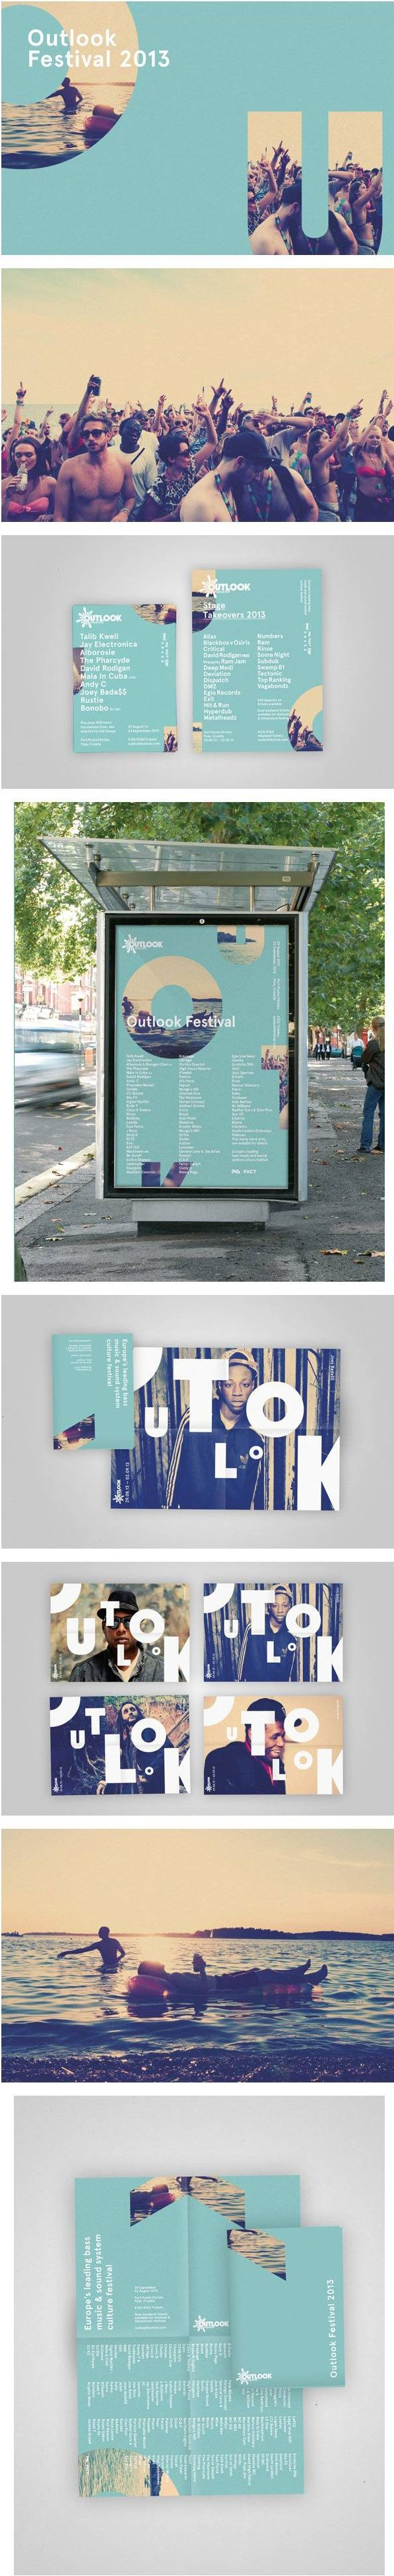 Outlook Festival 2013 - I love the photography style and typography. Translates well into #poster or stationery